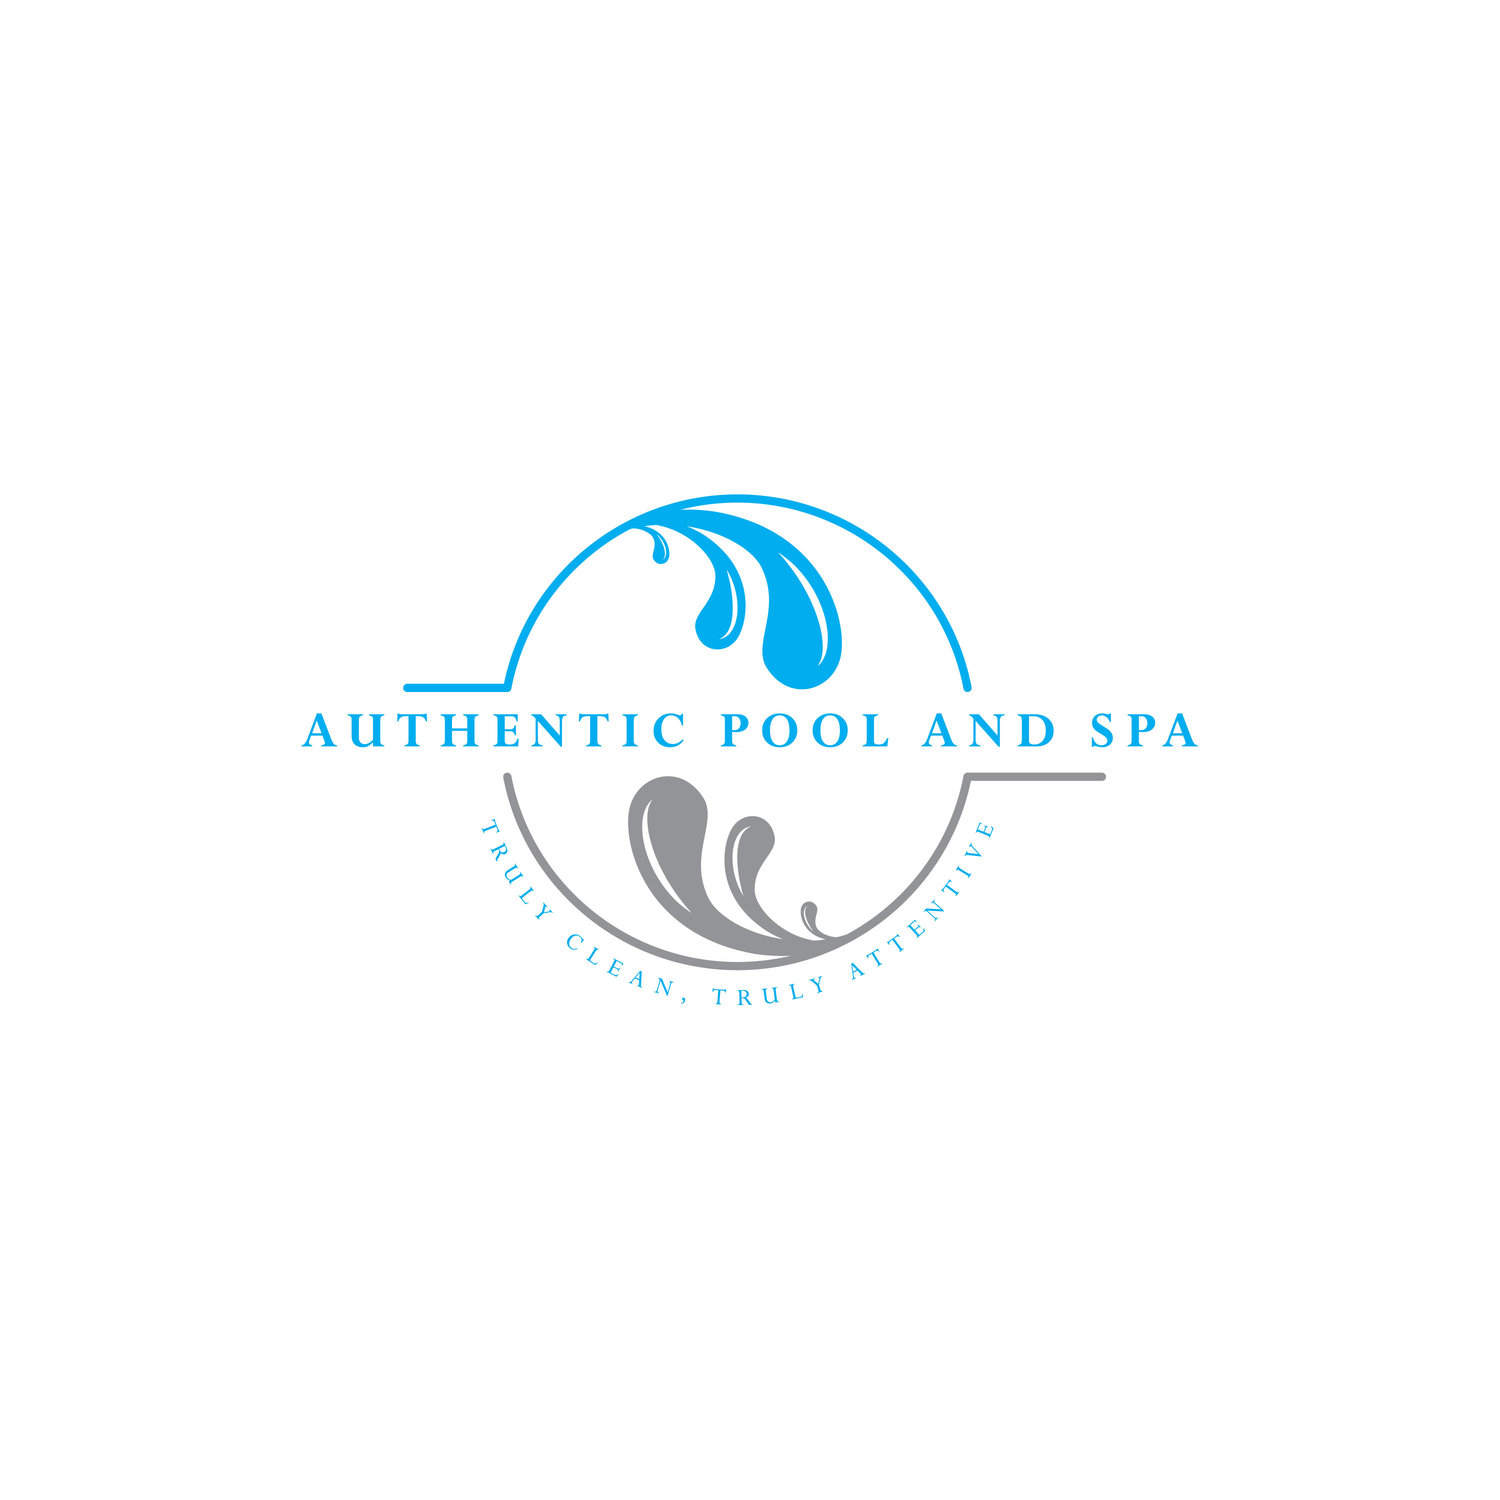 Authentic Pool And Spa